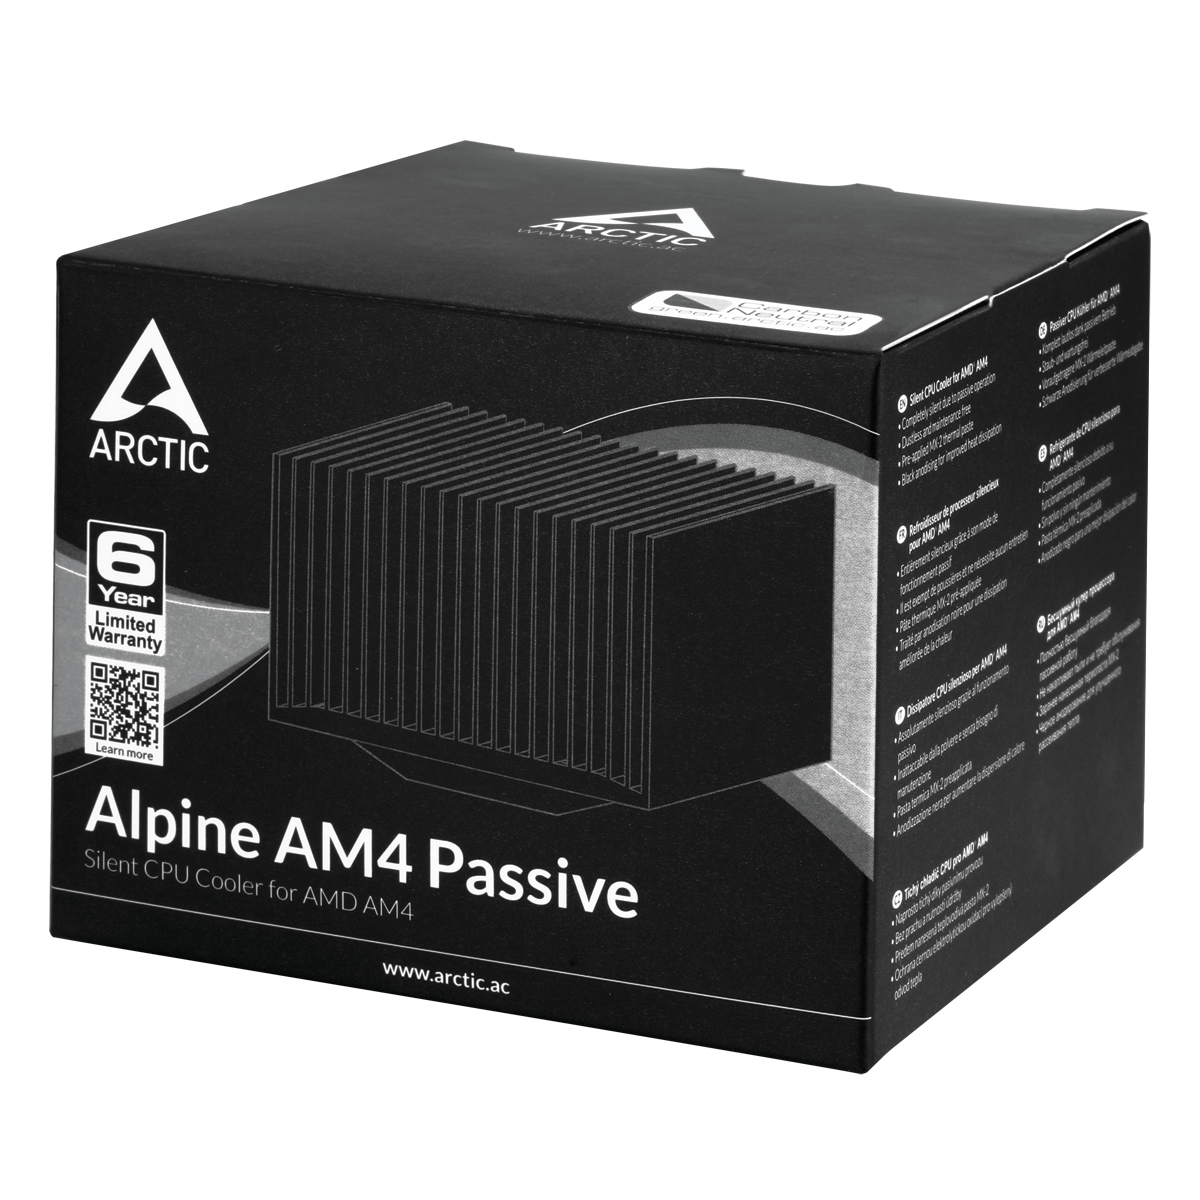 Alpine AM4 Passive